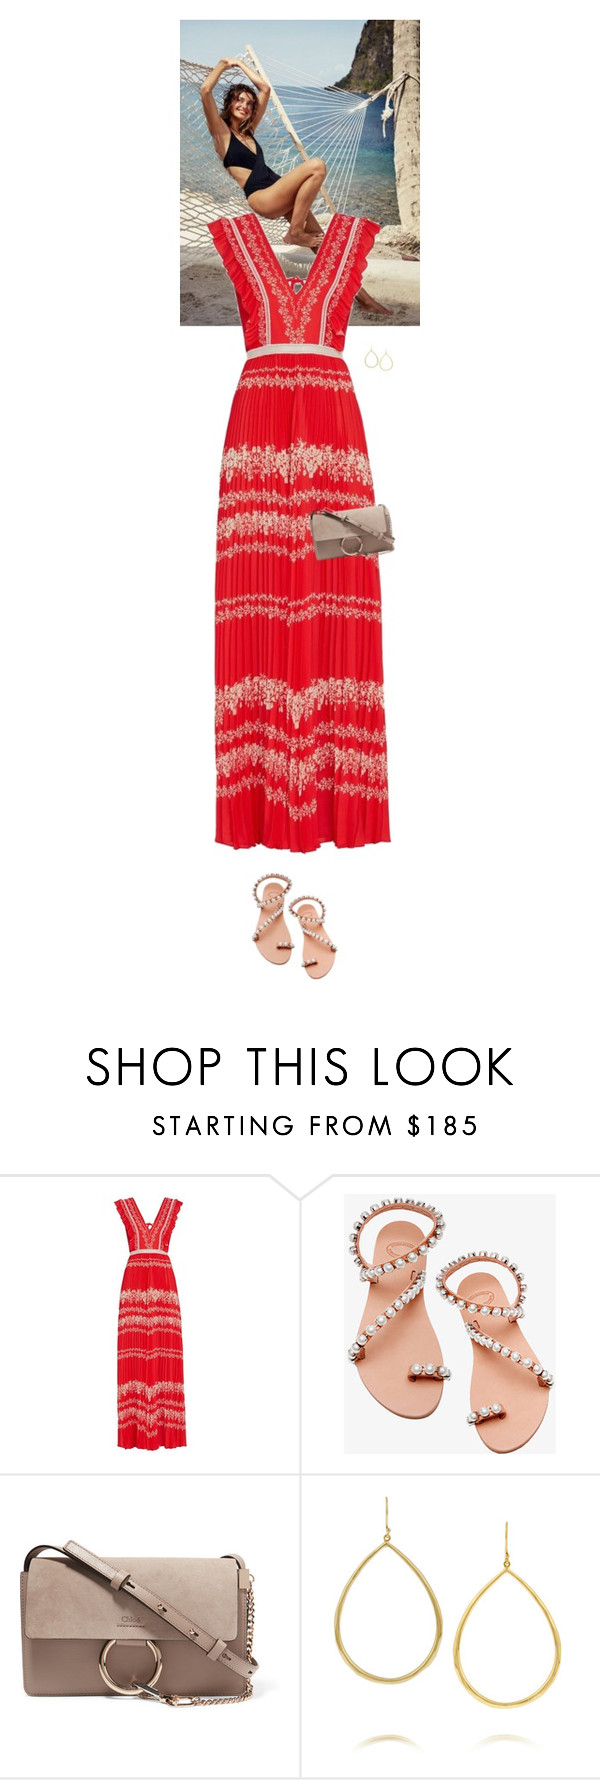 """""""Outfit of the Day"""" by wizmurphy ❤ liked on Polyvore featuring Intermix, Elina Linardaki, Chloé, Ippolita, ootd and redwhiteandblue"""